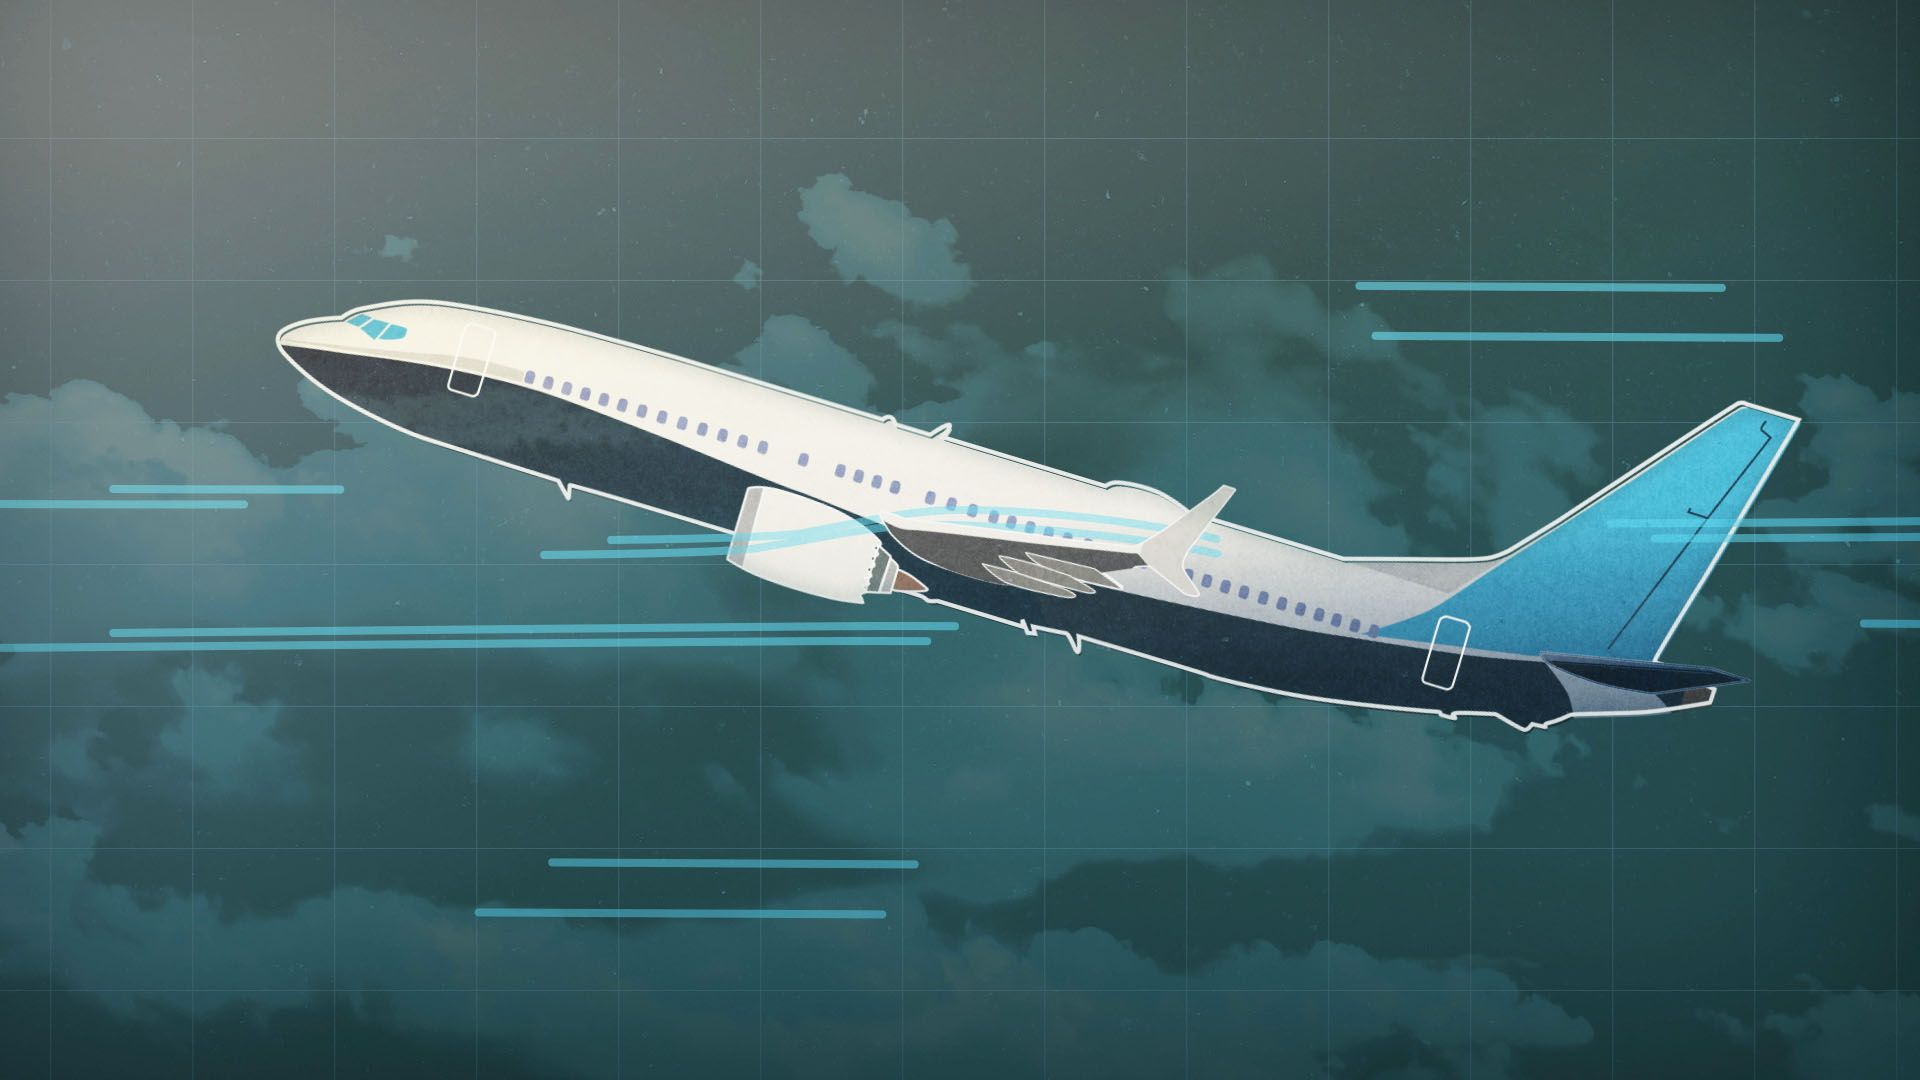 FAA and Boeing defend oversight of 737 Max